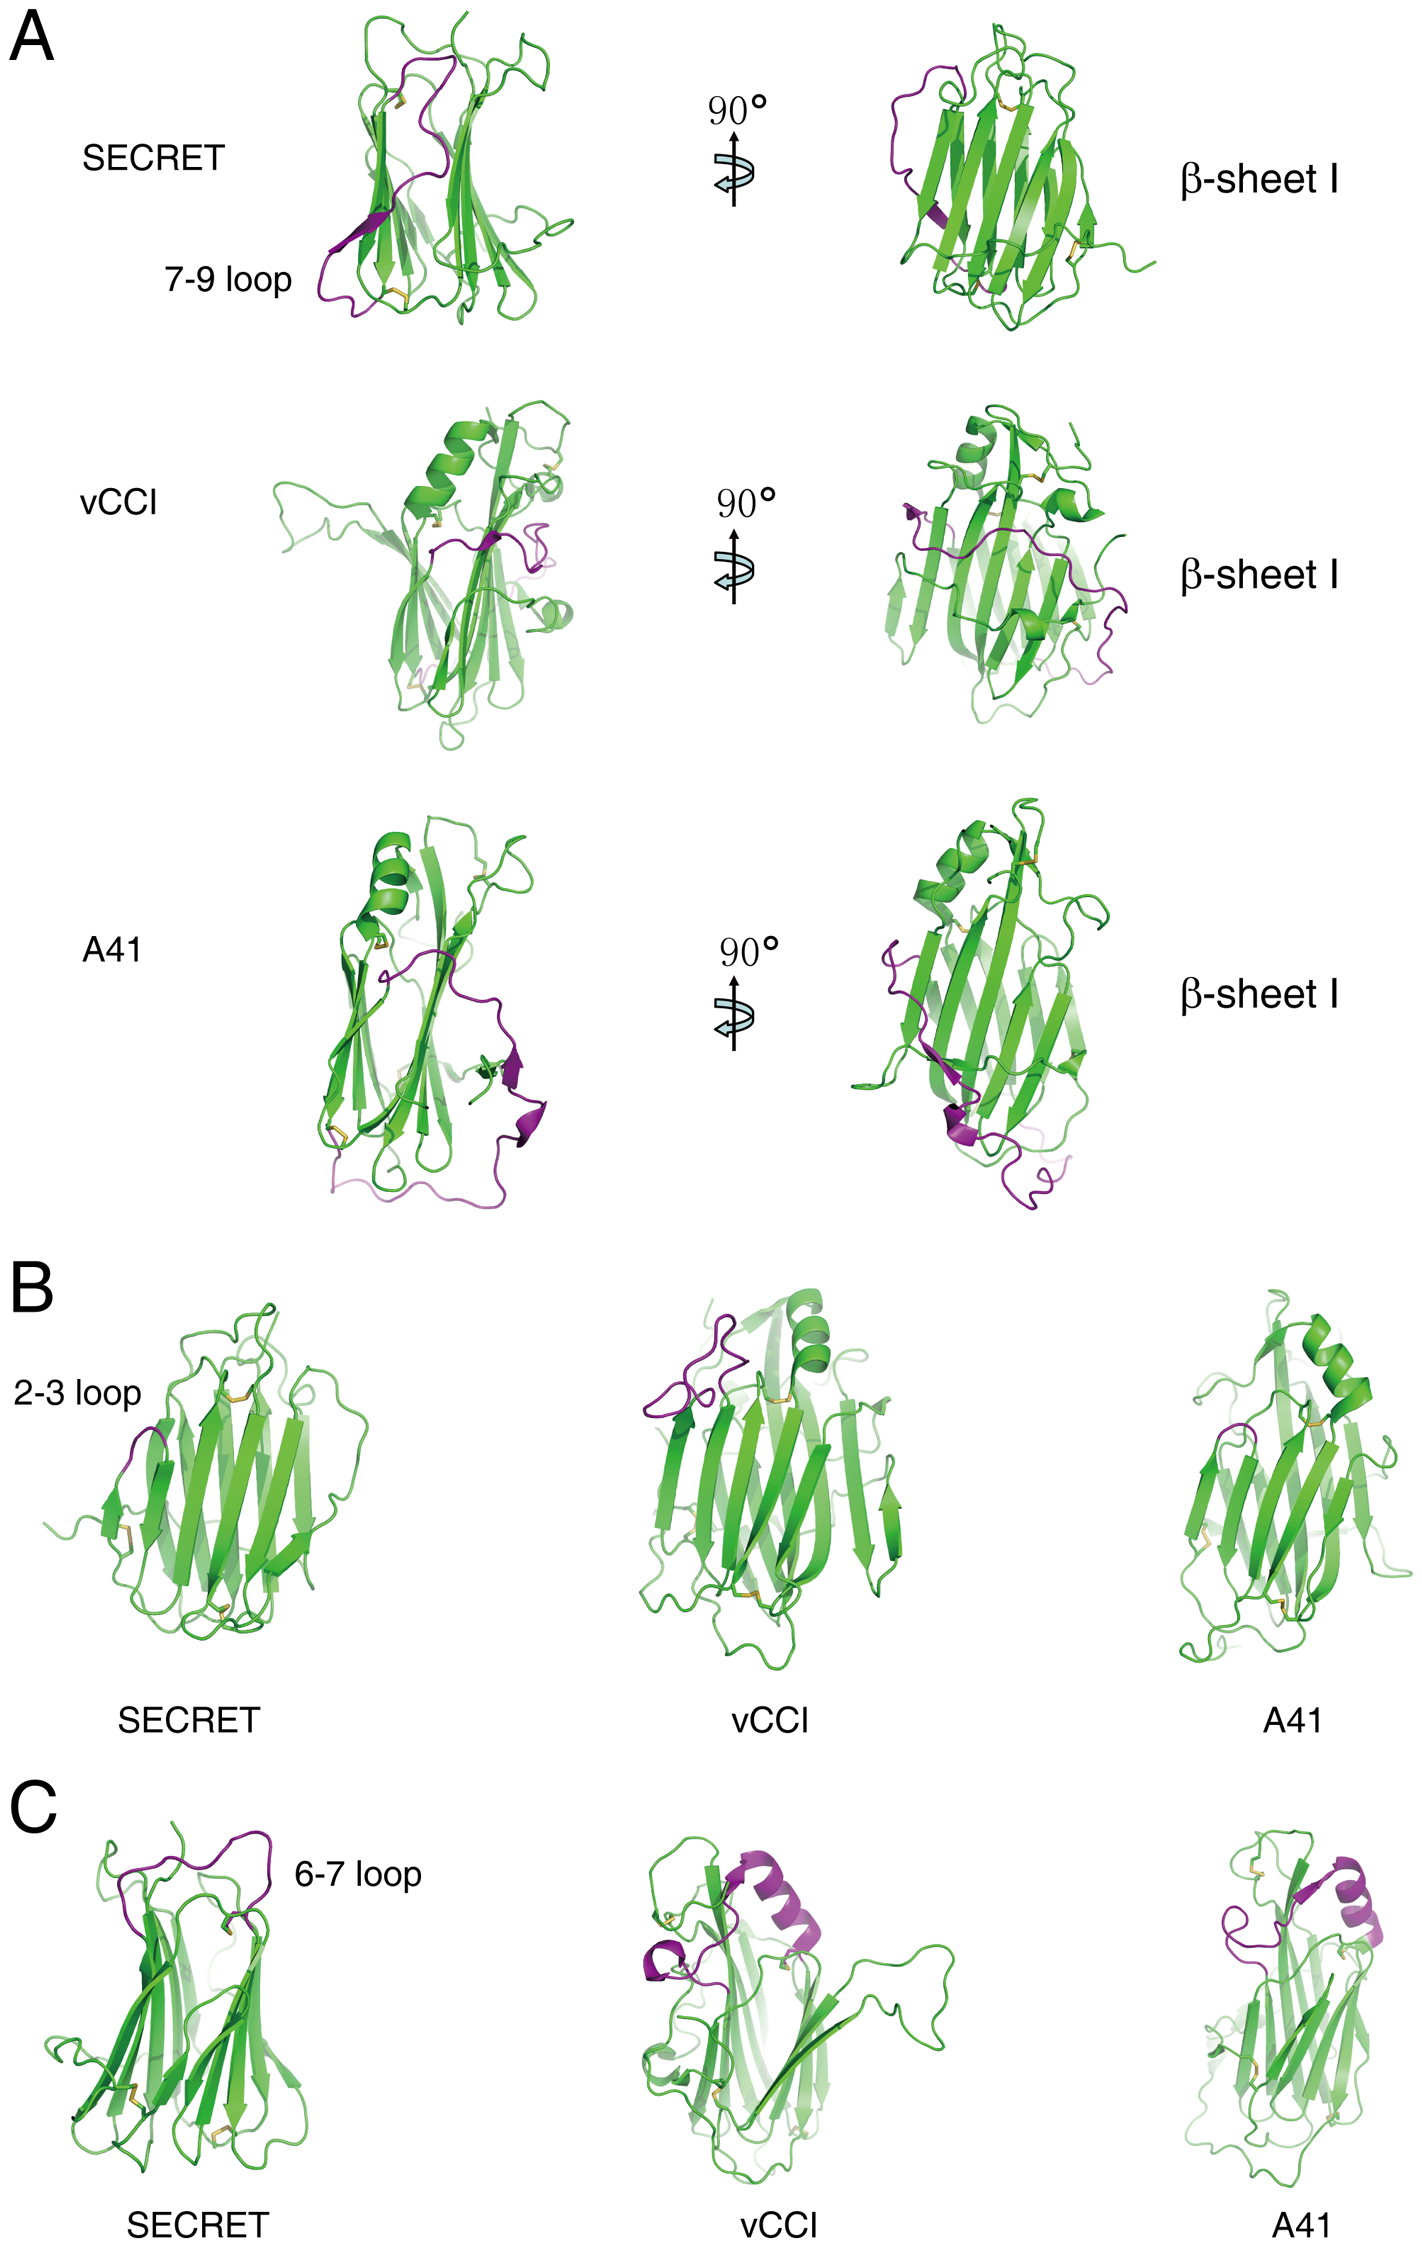 Structural comparison of the SECRET domain with vCCI and A41.